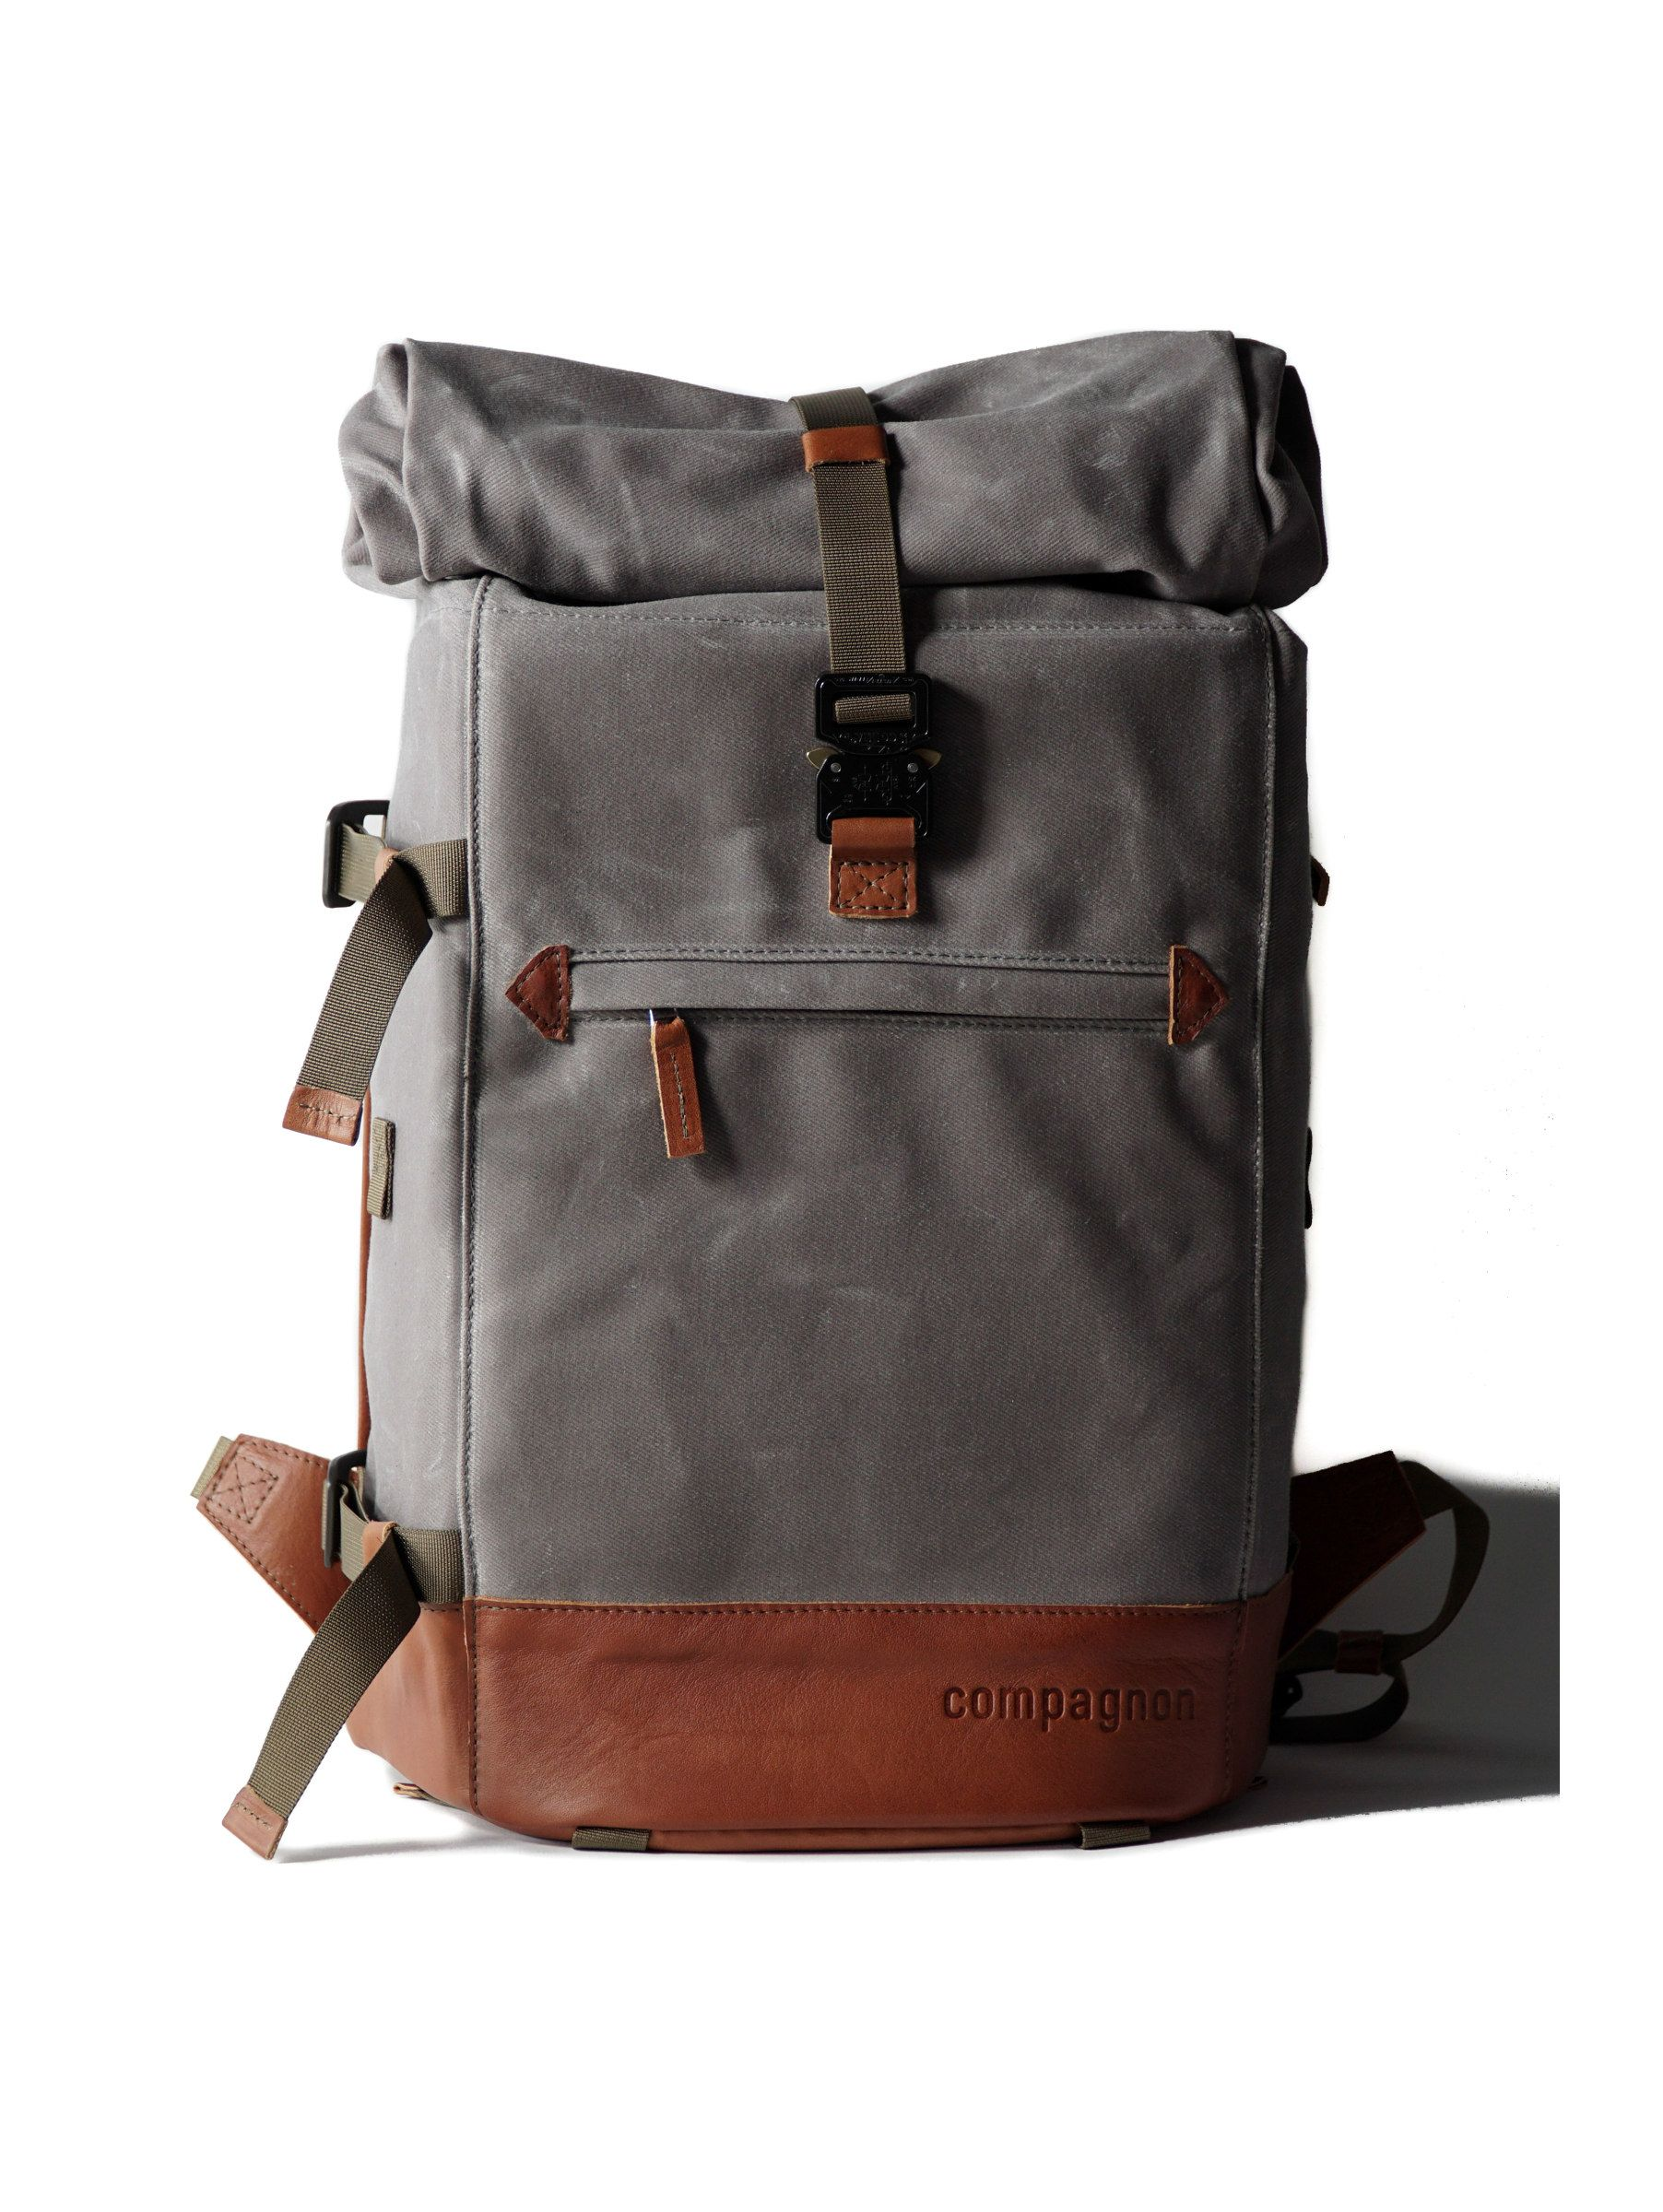 compagnon photo camera backpack urban grey canvas   leather